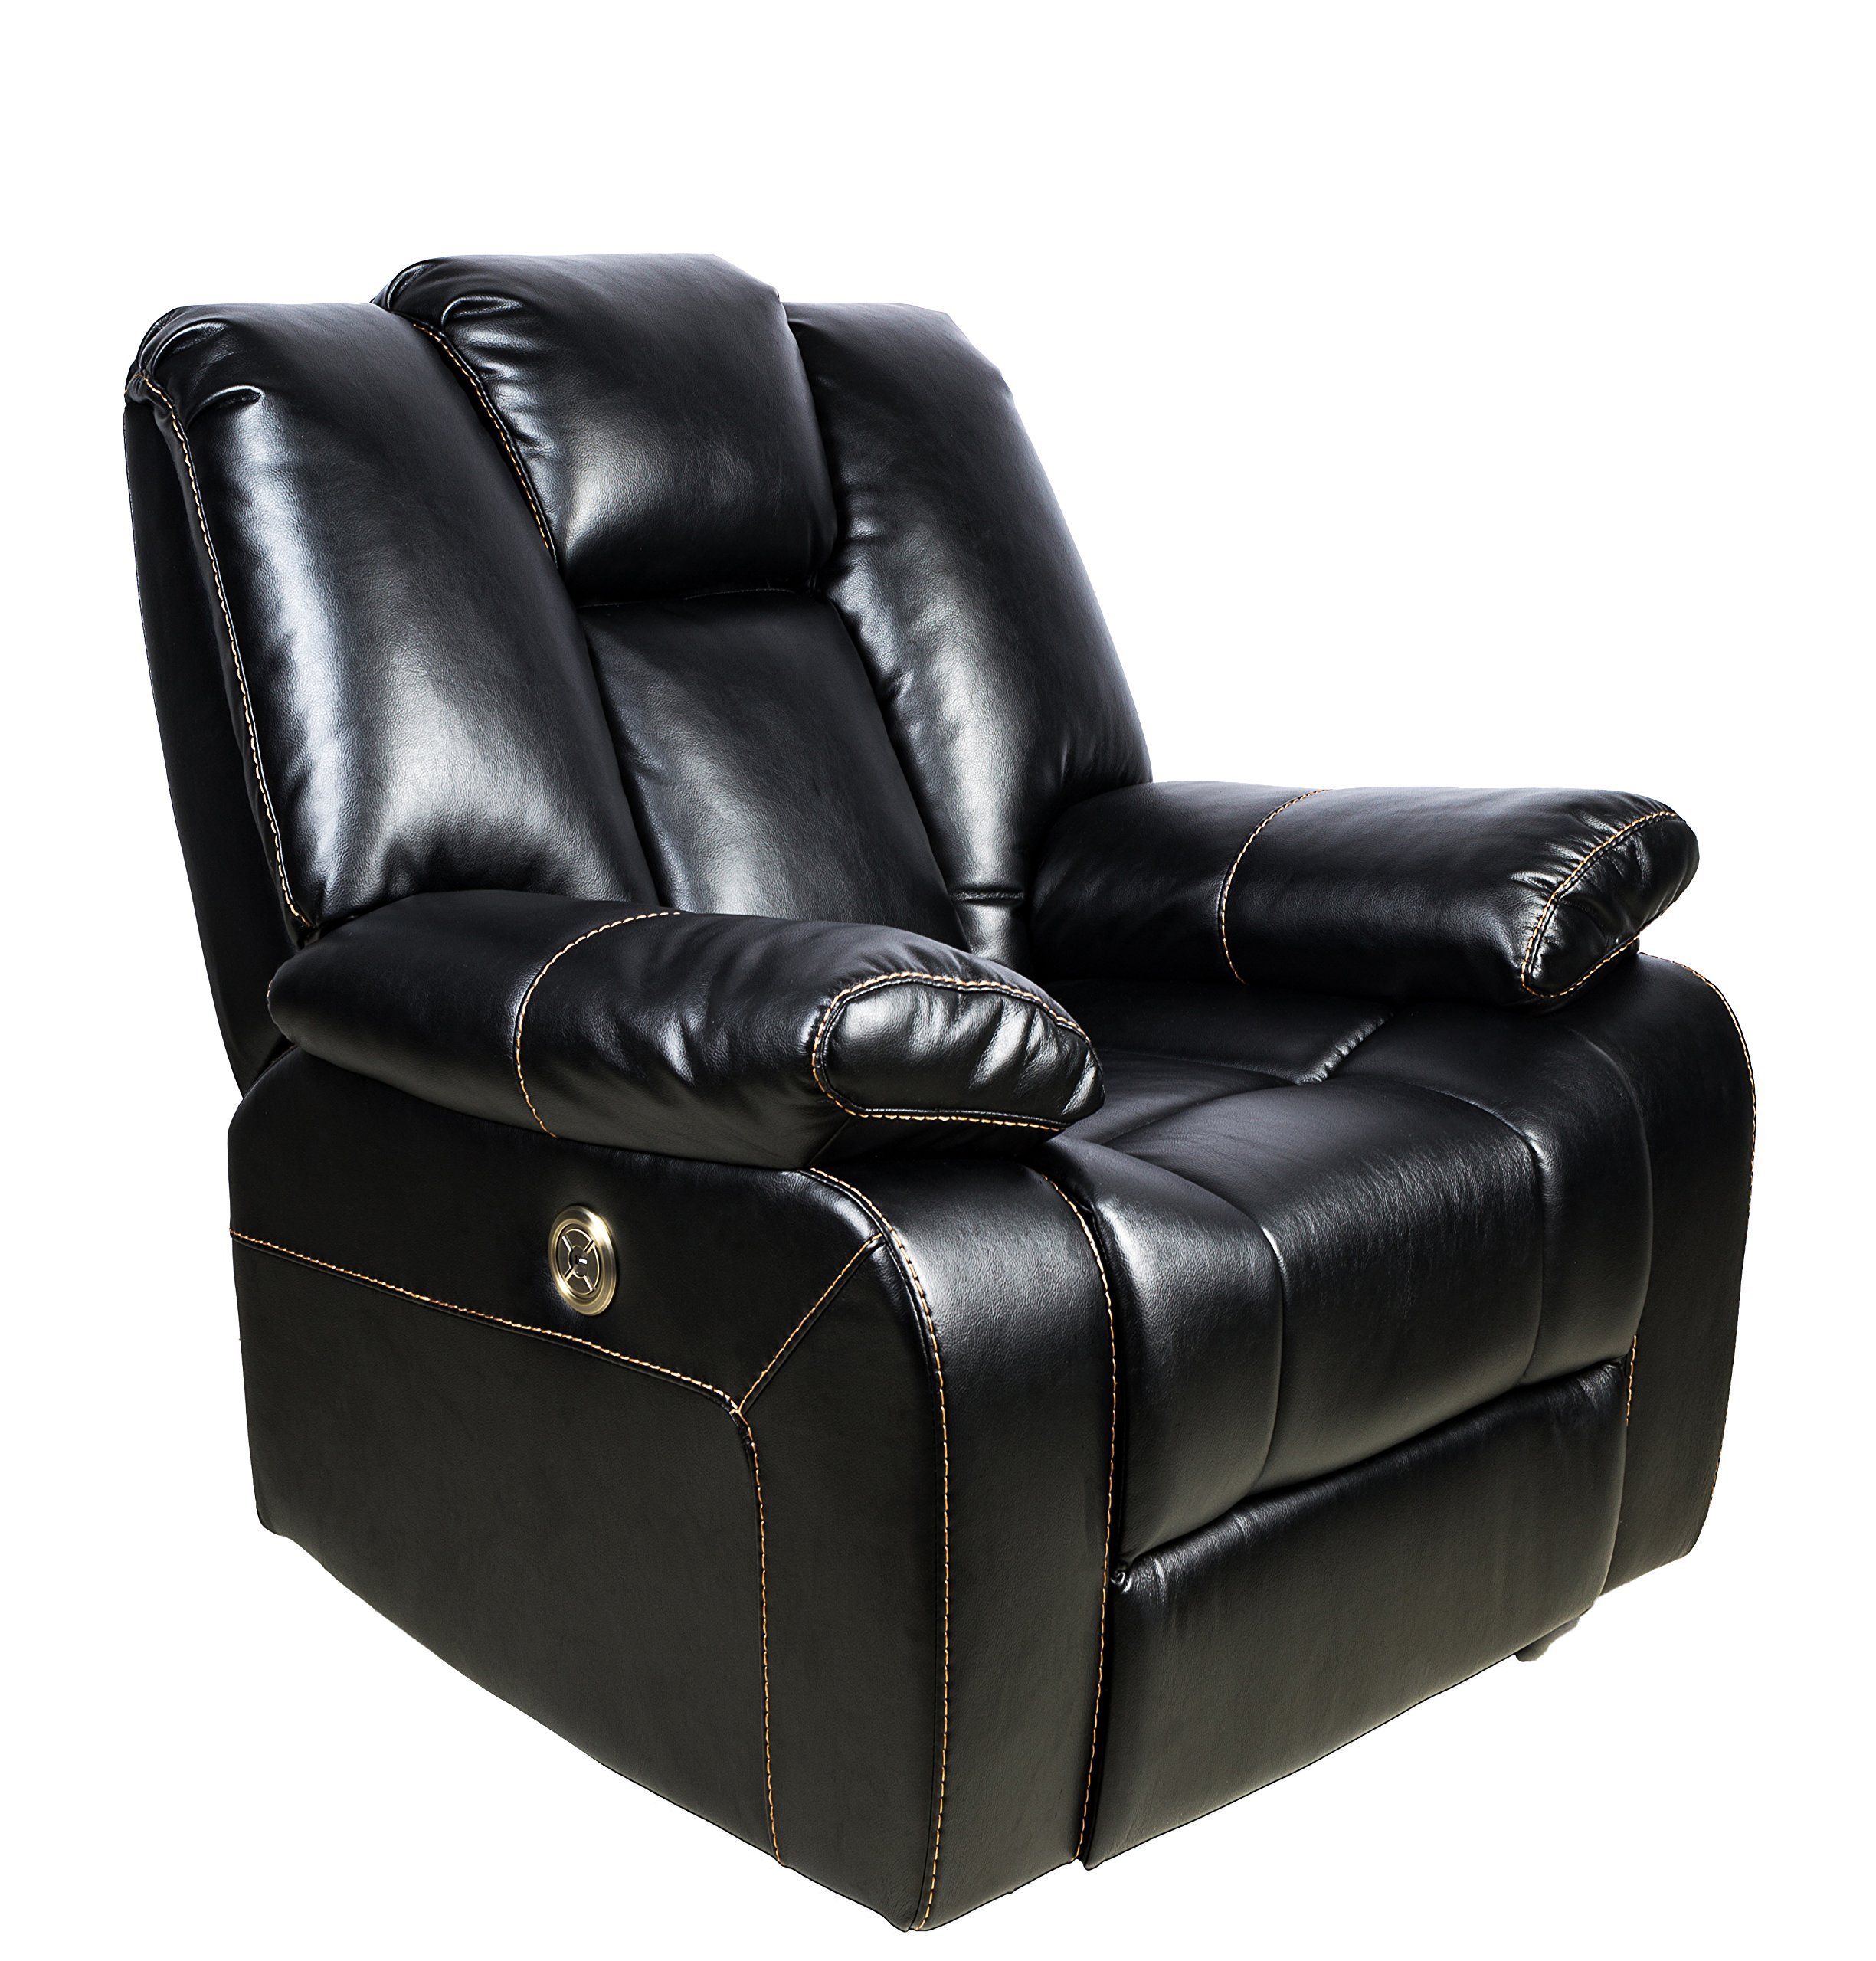 Power Recliner With USB Port, Adjustable Headrest,Leather Reclining Chair,BLACK